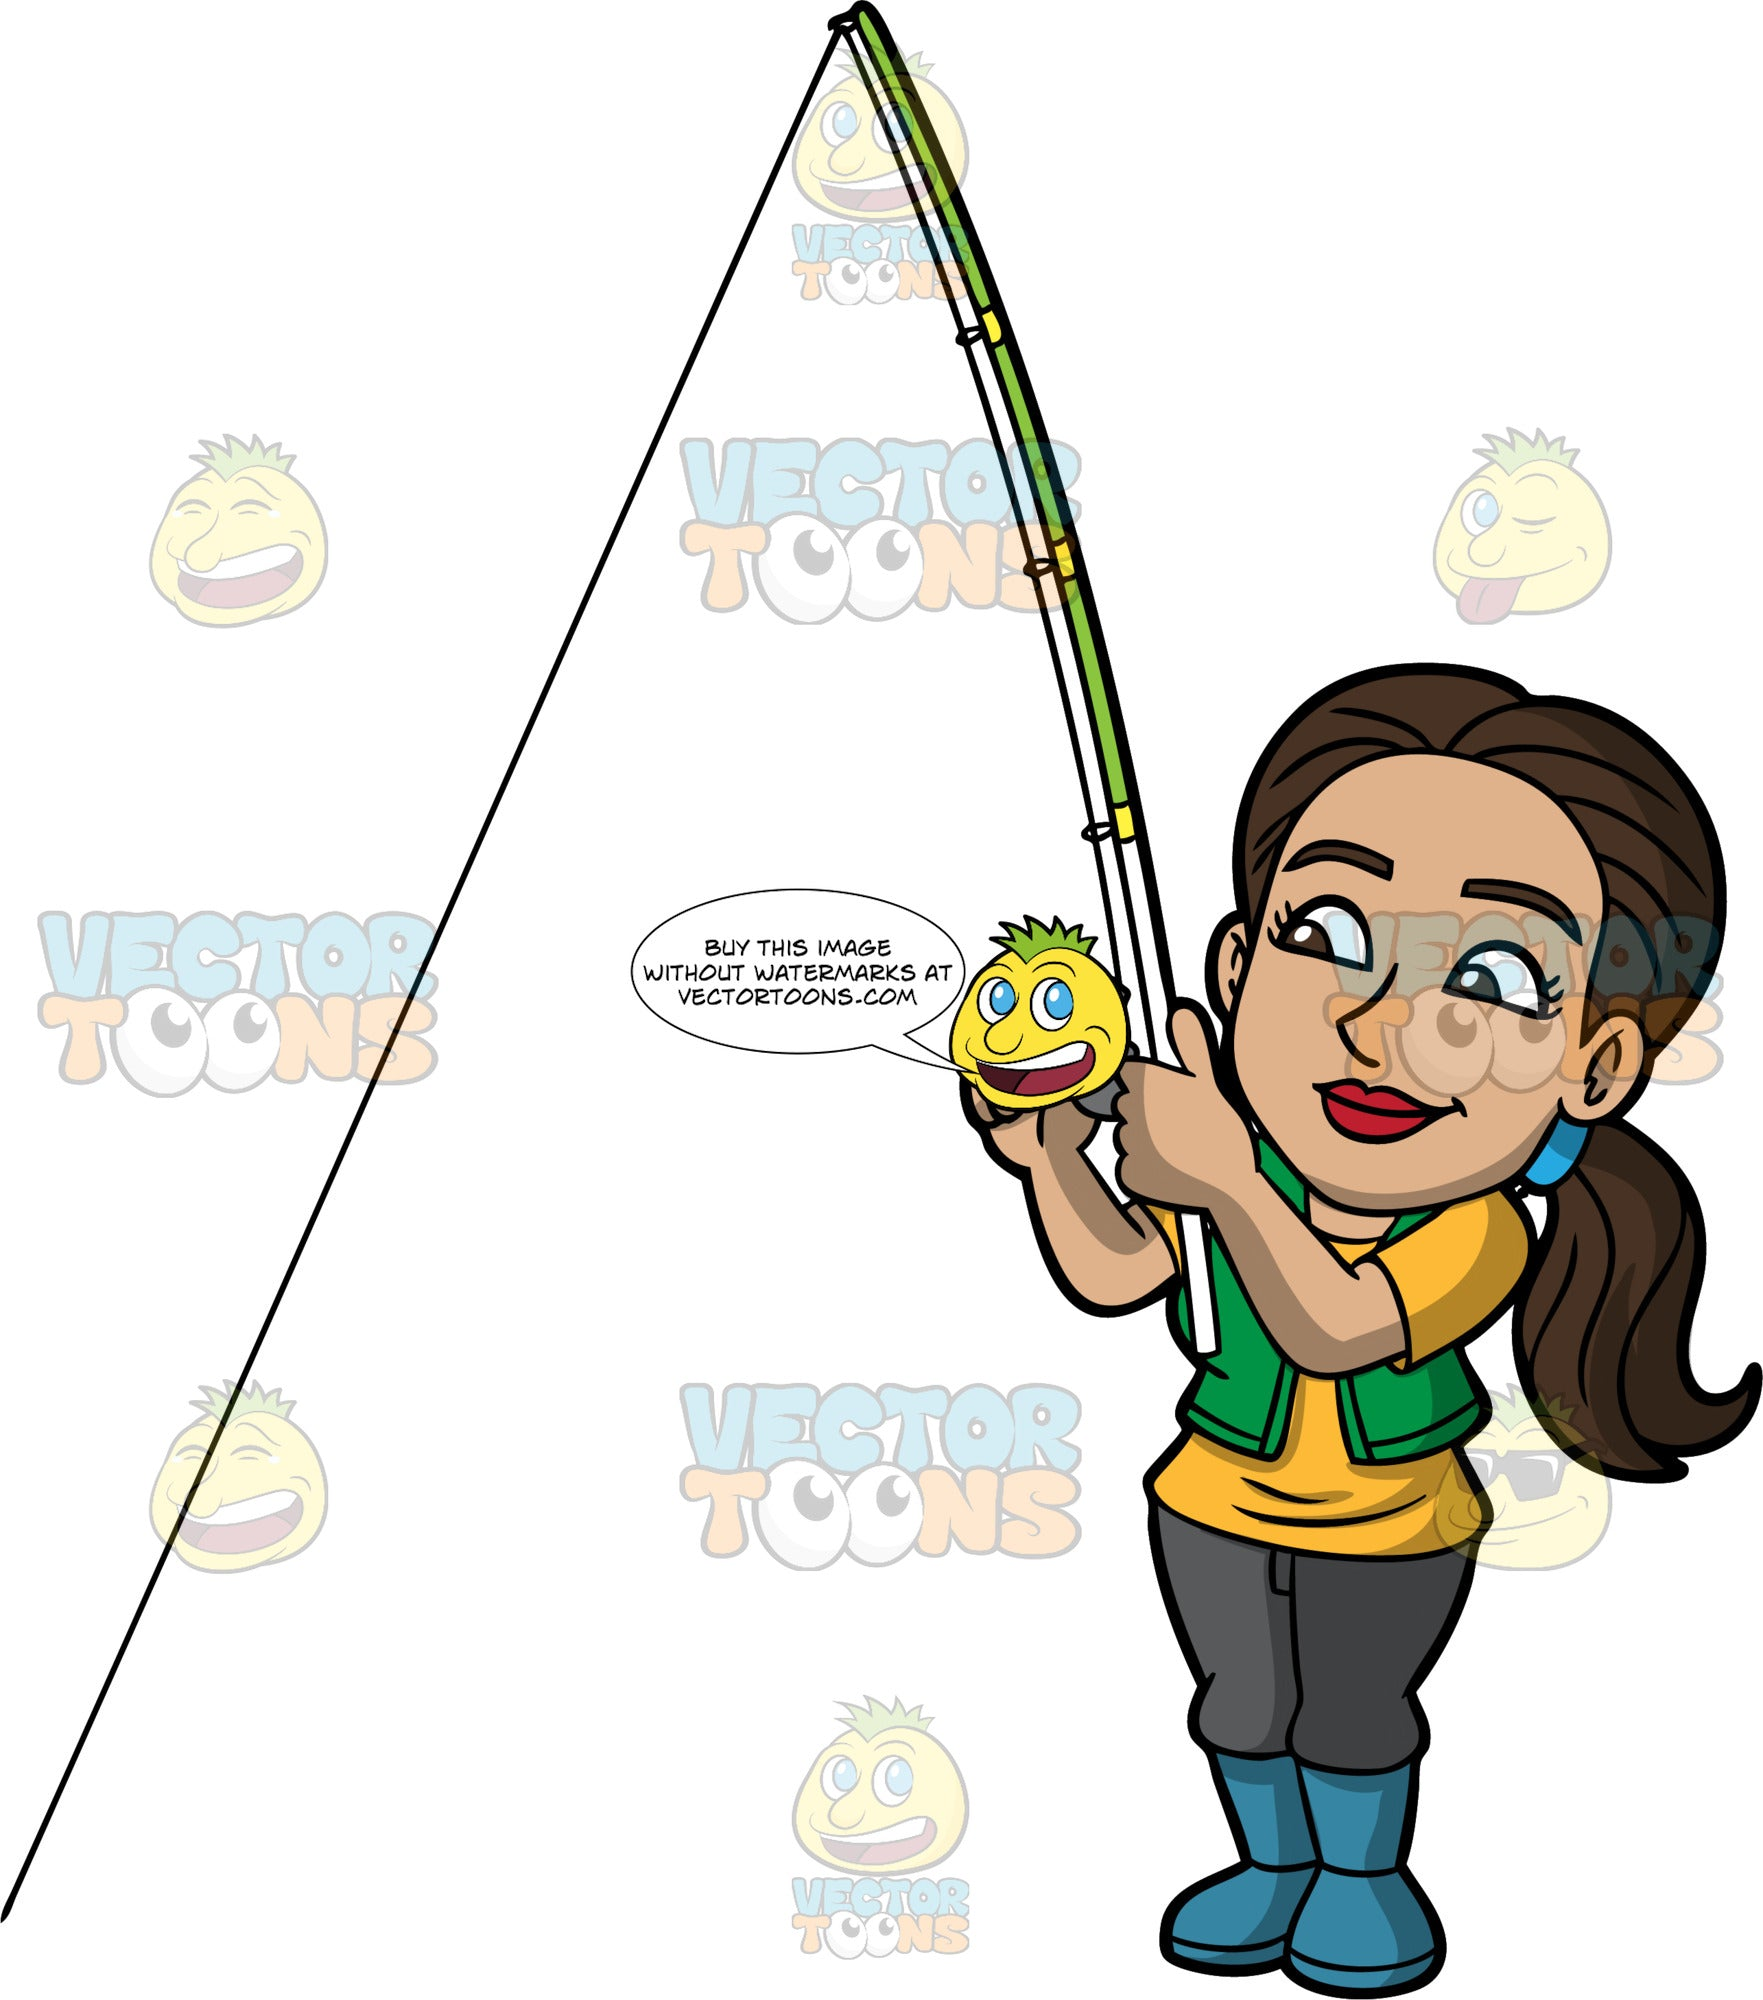 Isabella Trying To Catch A Fish. A Hispanic woman wearing dark gray pants, a green vest over a yellow t-shirt, and blue rubber boots, standing and holding a fishing rod as she patiently waits to catch a fish